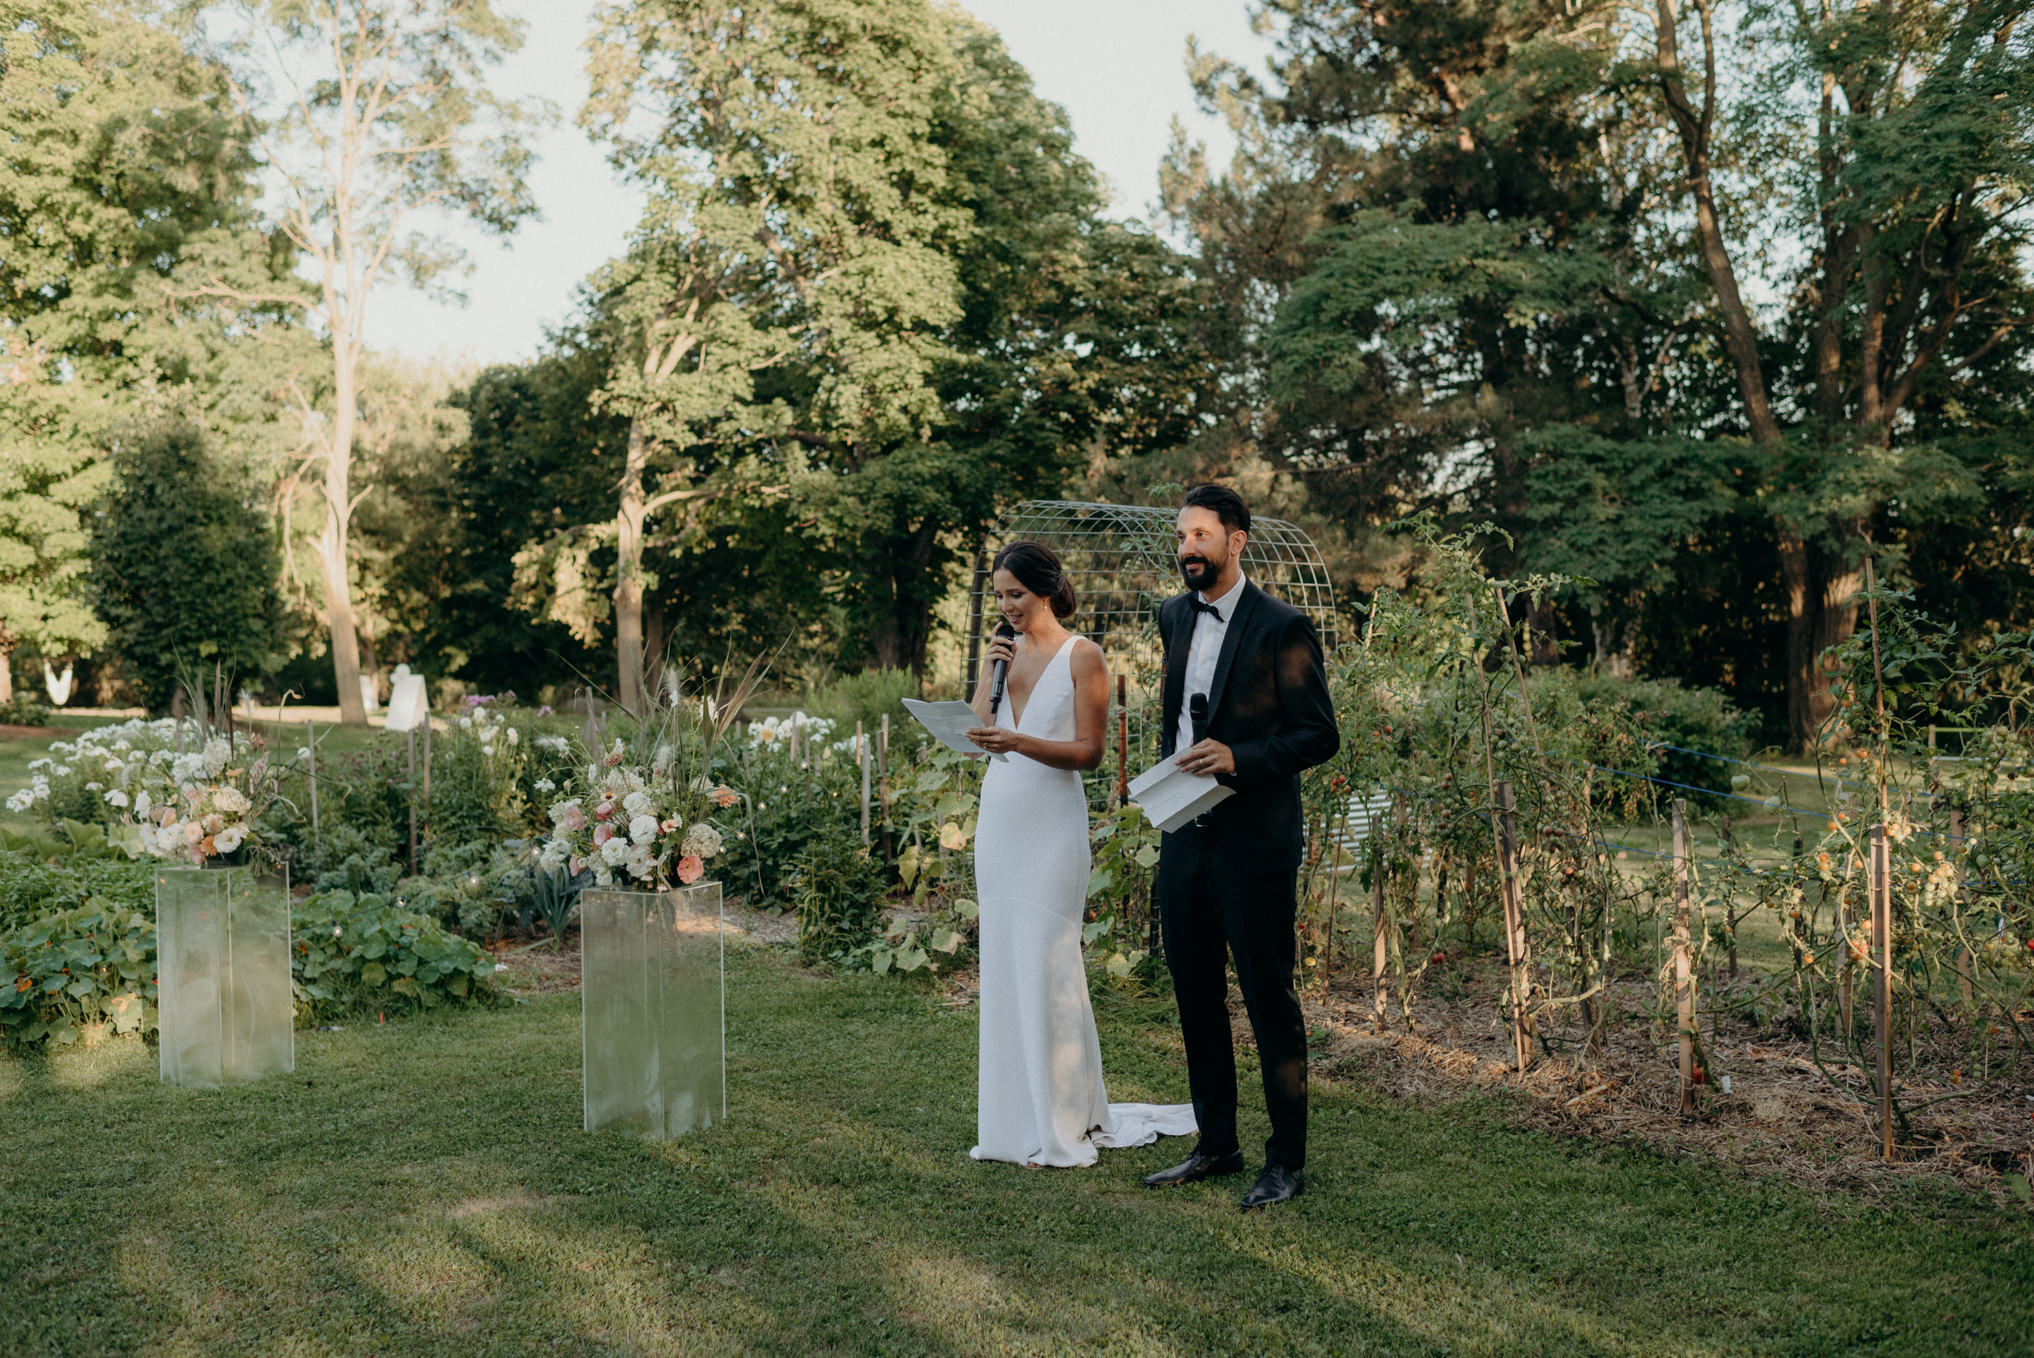 bride and groom saying speech on grass surrounded by garden and trees